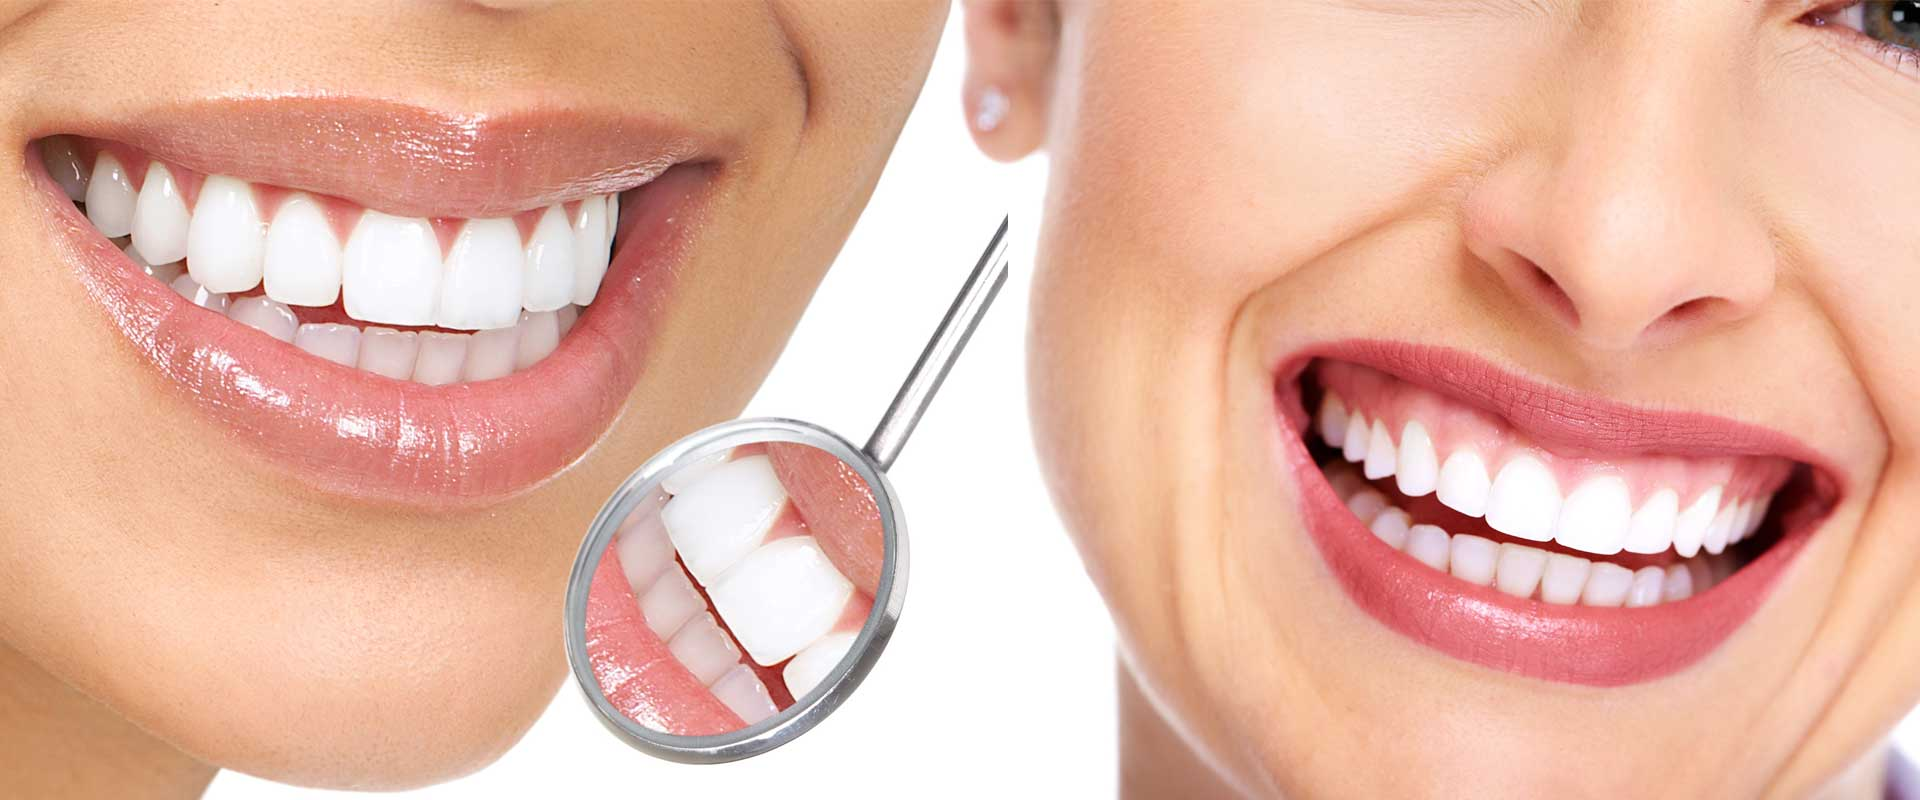 zirconia crown teeth denture manufacturers exporters suppliers in india punjab ludhiana